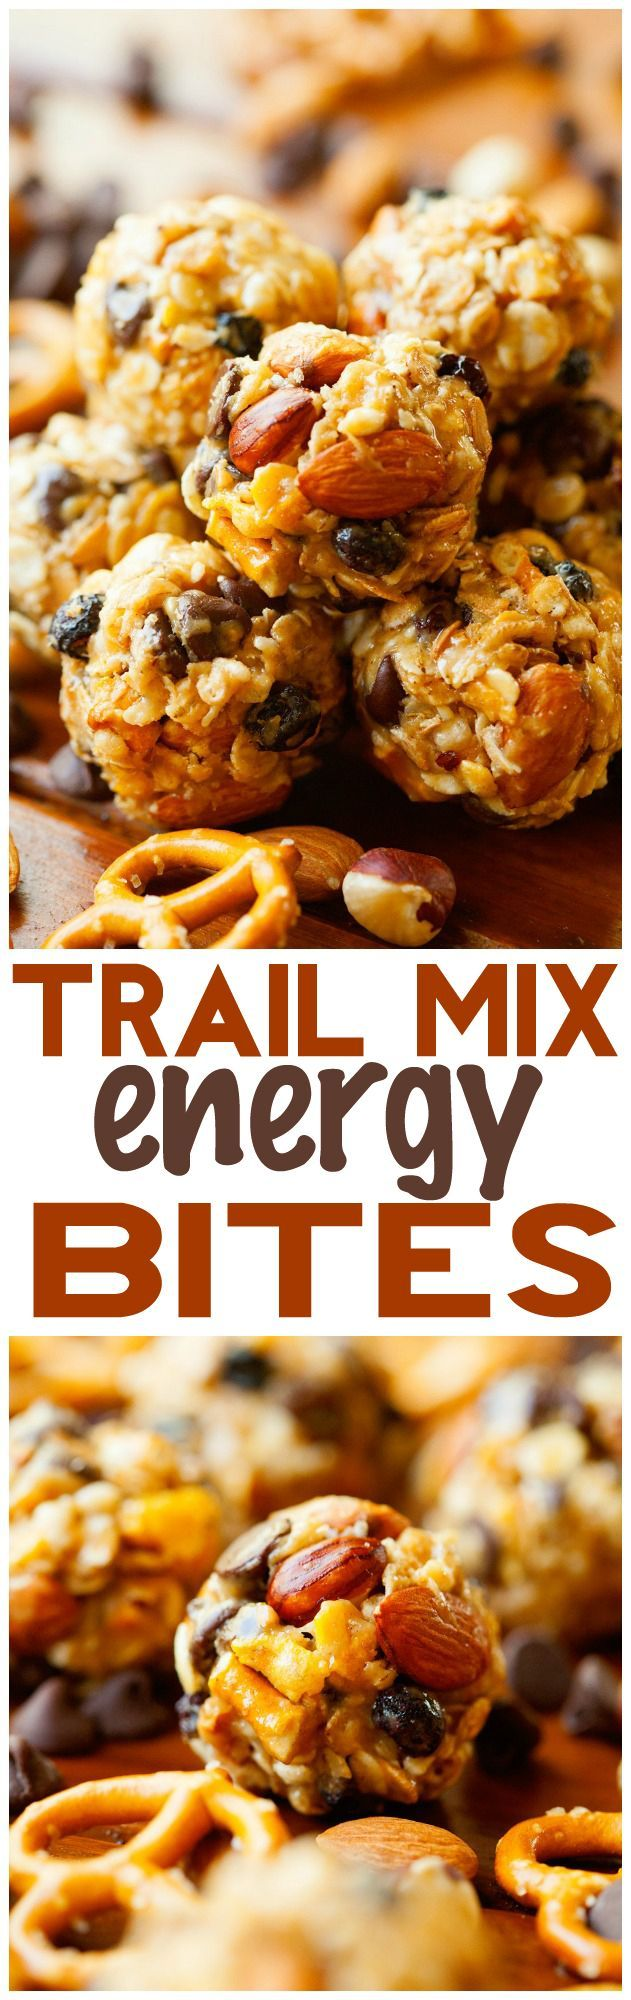 Trail Mix Energy Bites... These are SO easy to make and are a healthy and delicious snack to have on hand!